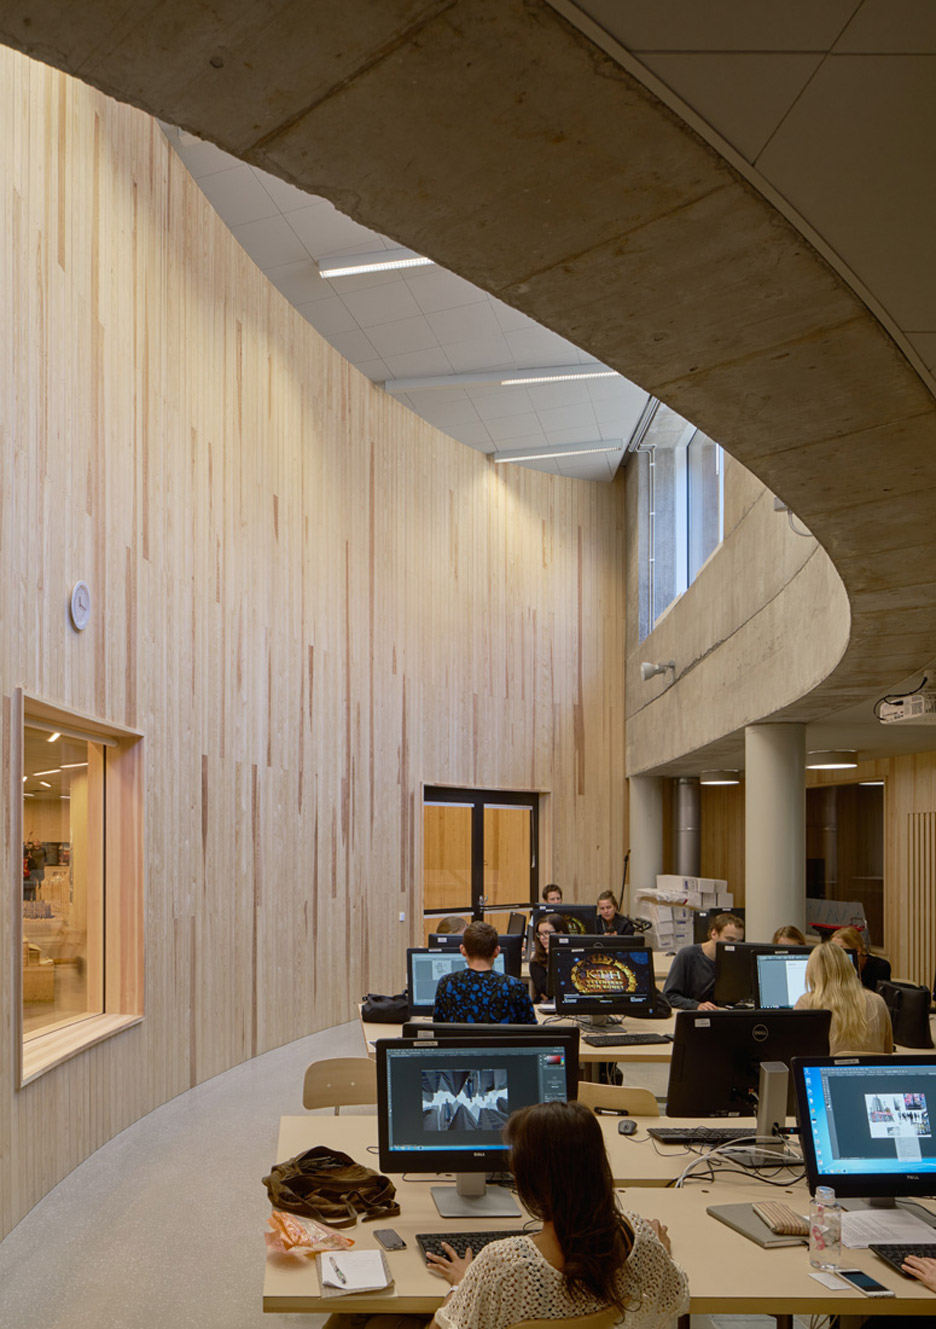 KTH School of Architecture by Tham and Videgard